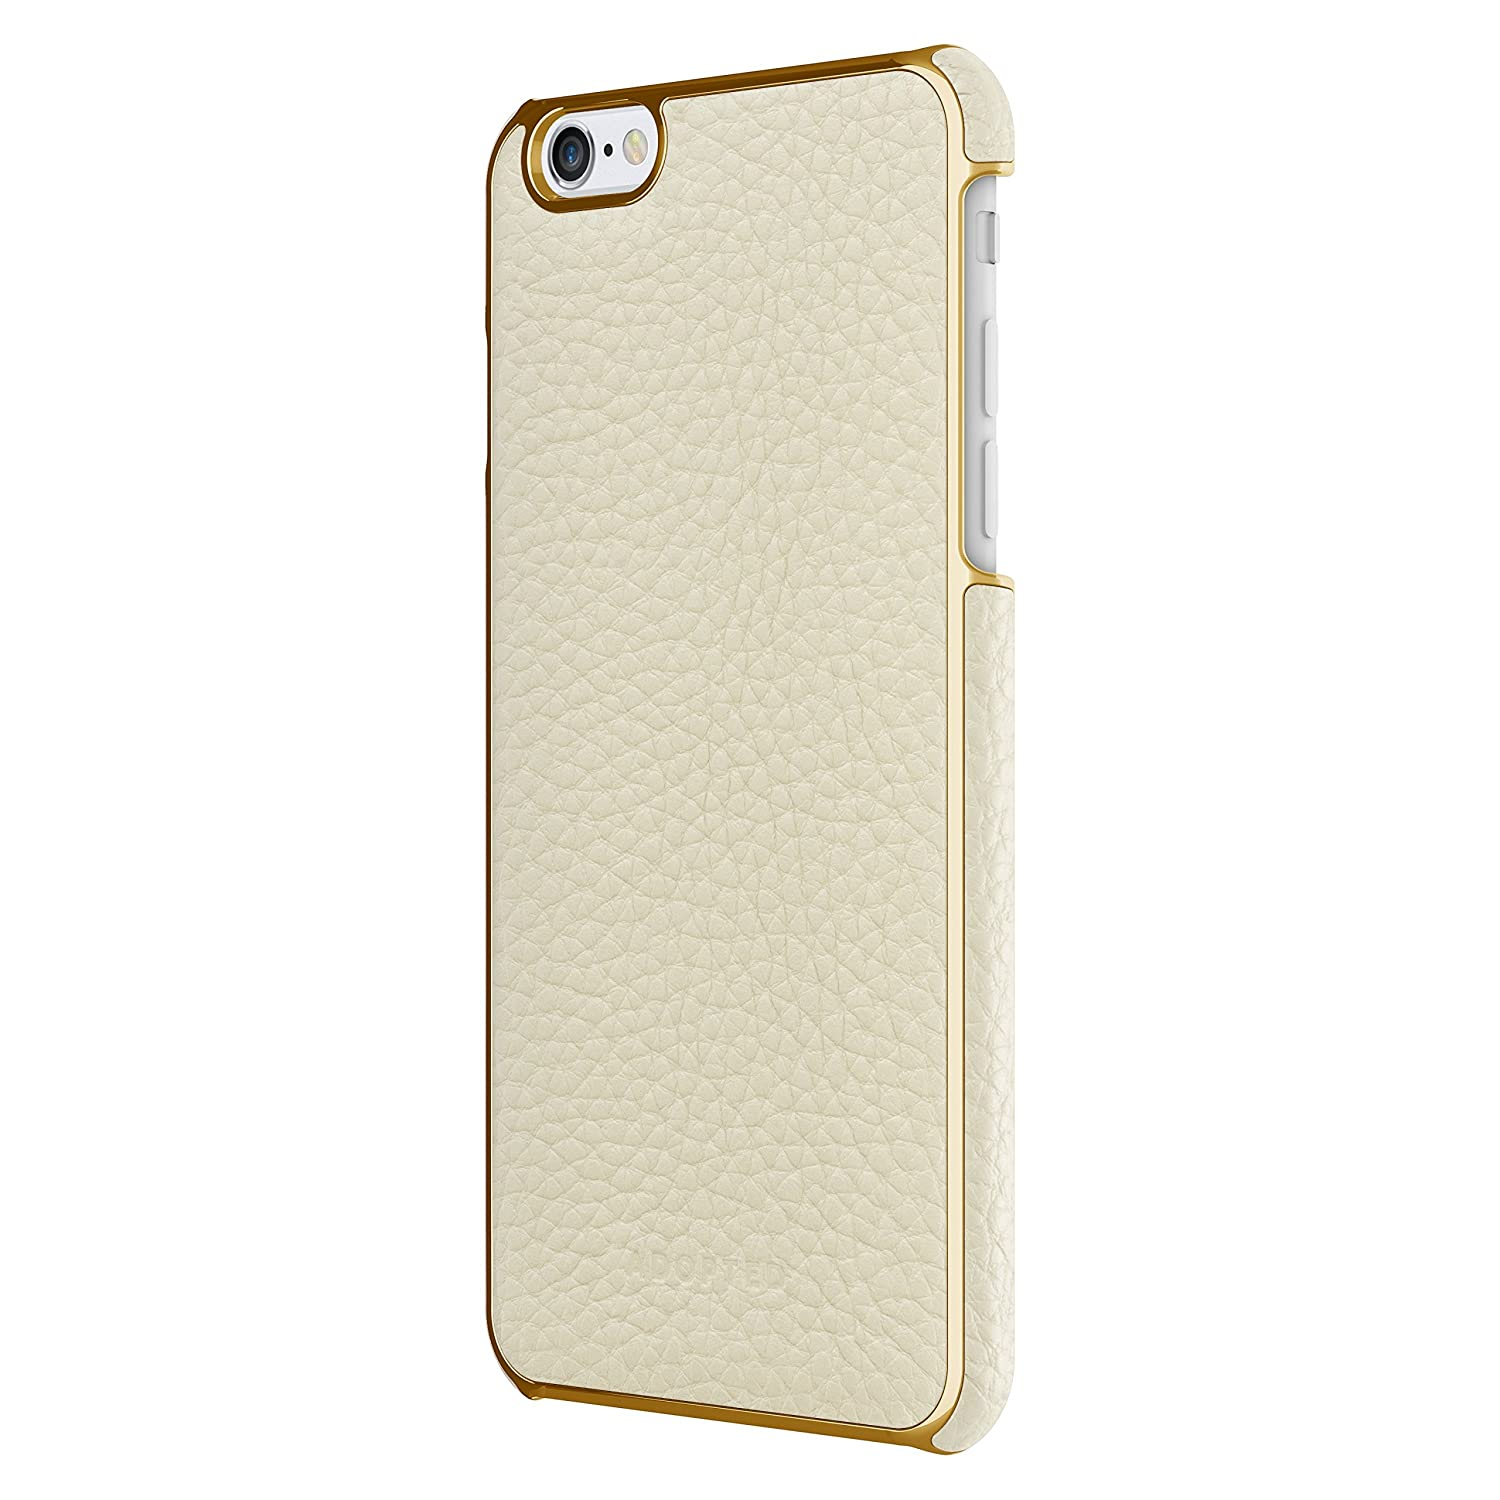 37df5936ecf1b3 Amazon.com  Adopted Leather Wrap Case for Apple iPhone 6 Plus 6s Plus